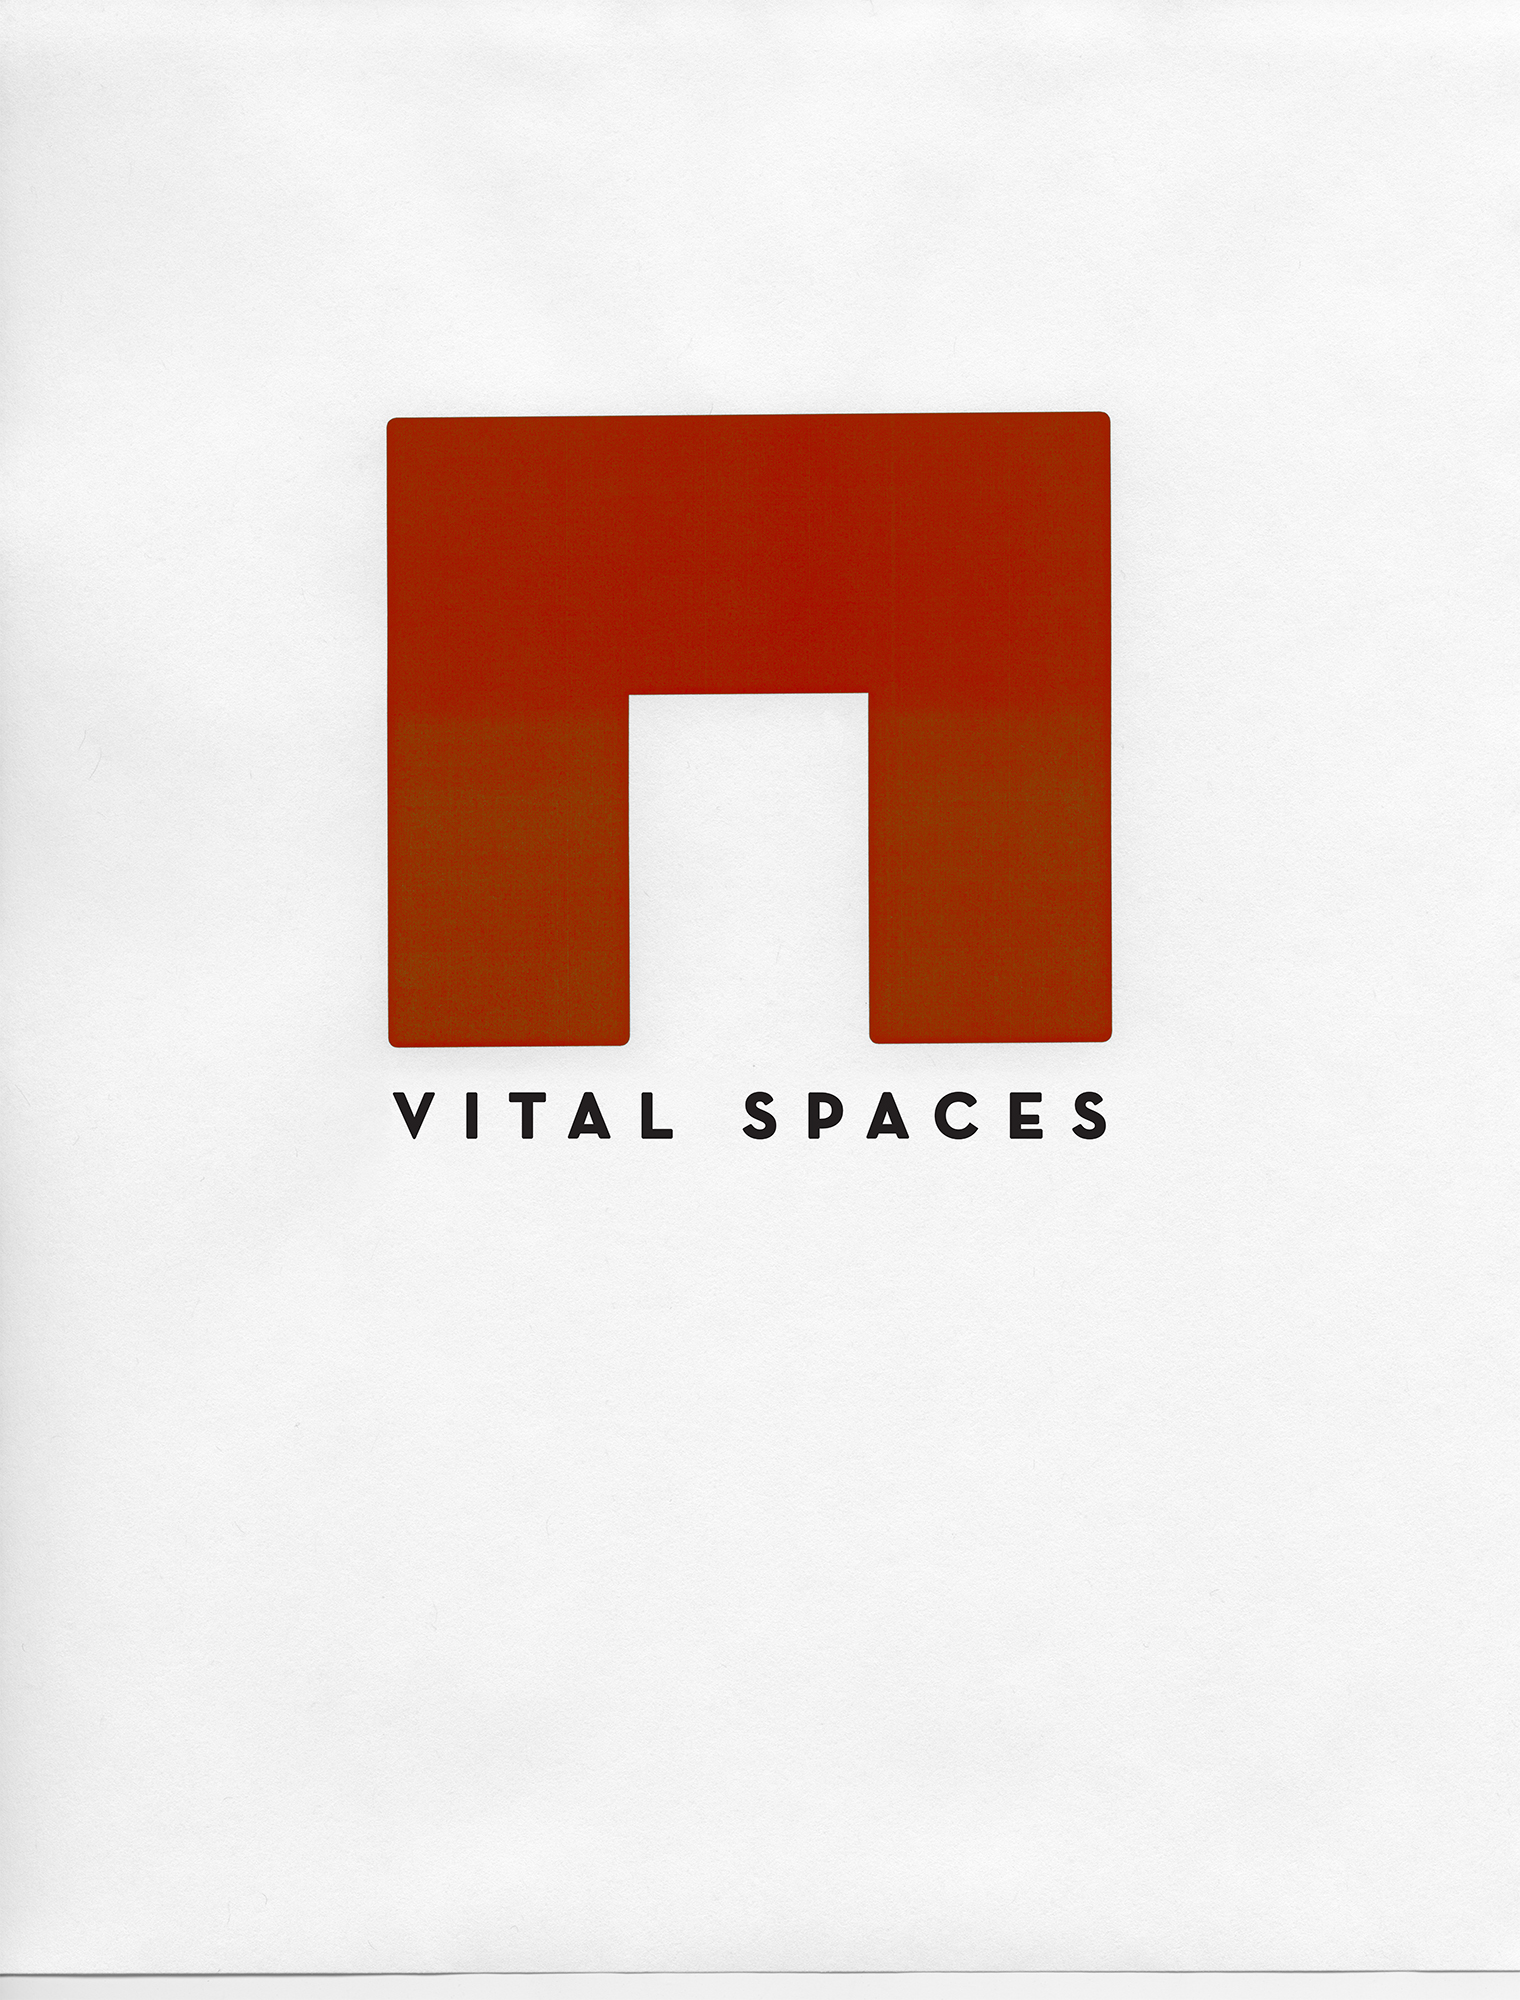 Vital Spaces Announces #NMtwinning - A Social Media Art Challenge with Prize Money